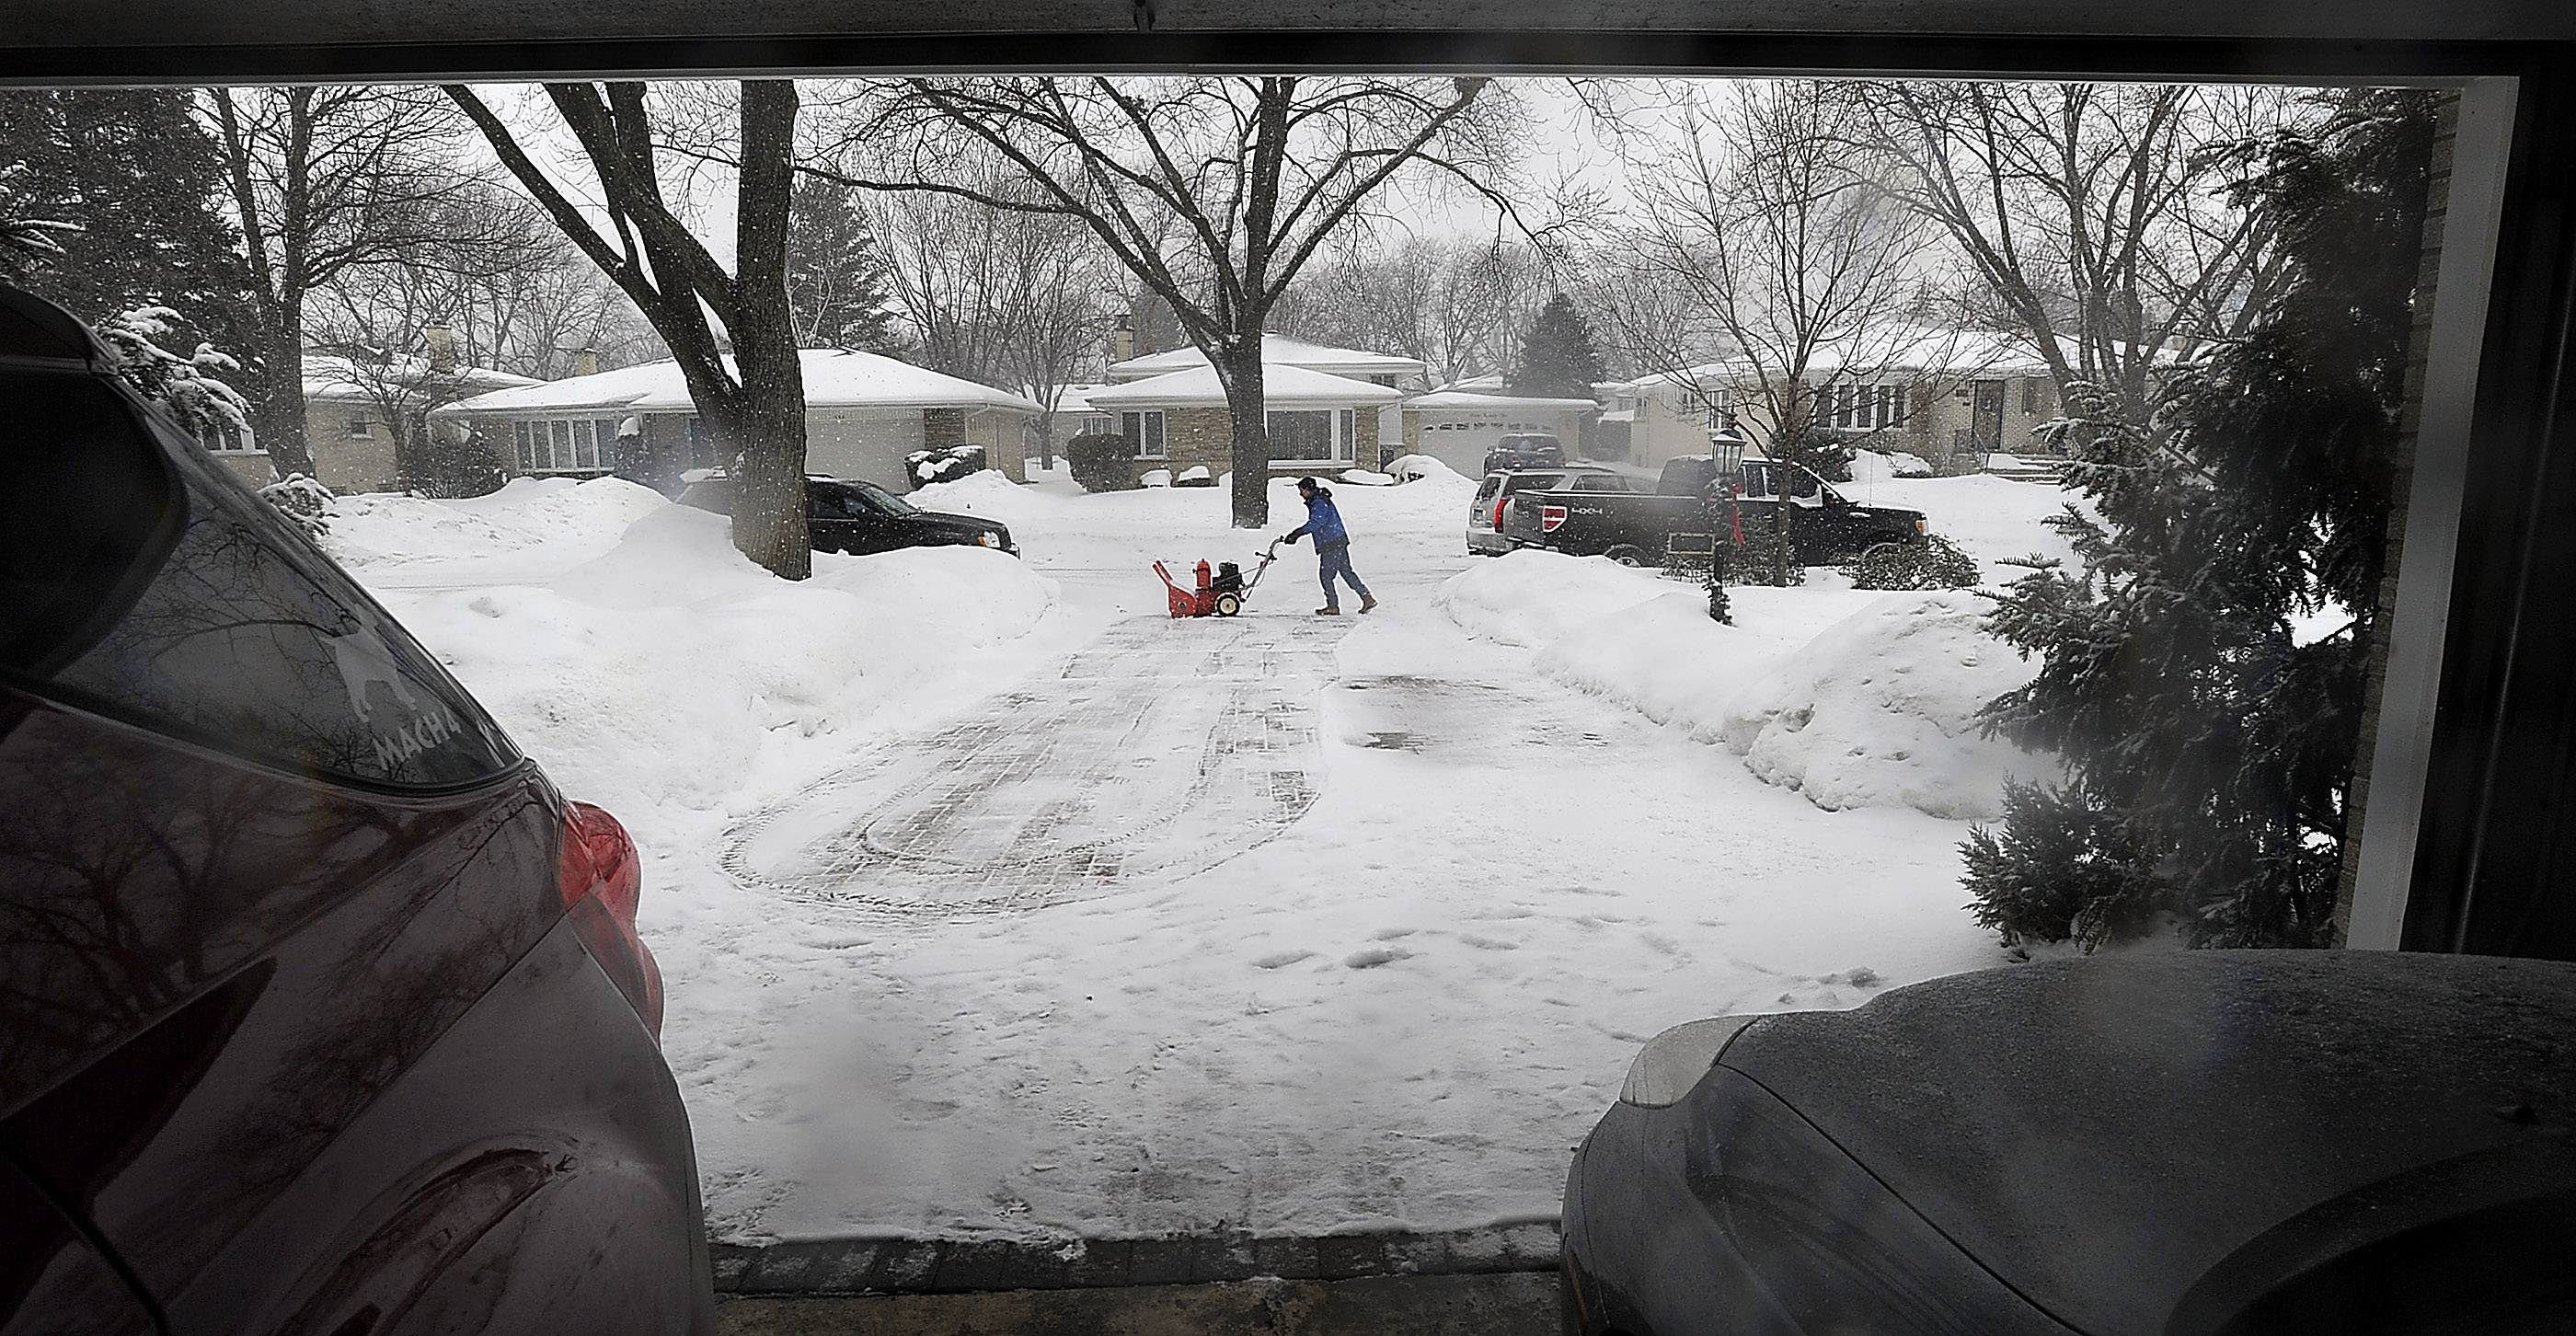 As soon as he clears his driveway in Des Plaines, Jim Sieburg, 57, heads across the street to clear the driveway of an elderly widow. As longtime residents, Sieburg, his wife, Tammy, and sons Troy and Cory have plowed plenty of sidewalks and driveways for needy neighbors.